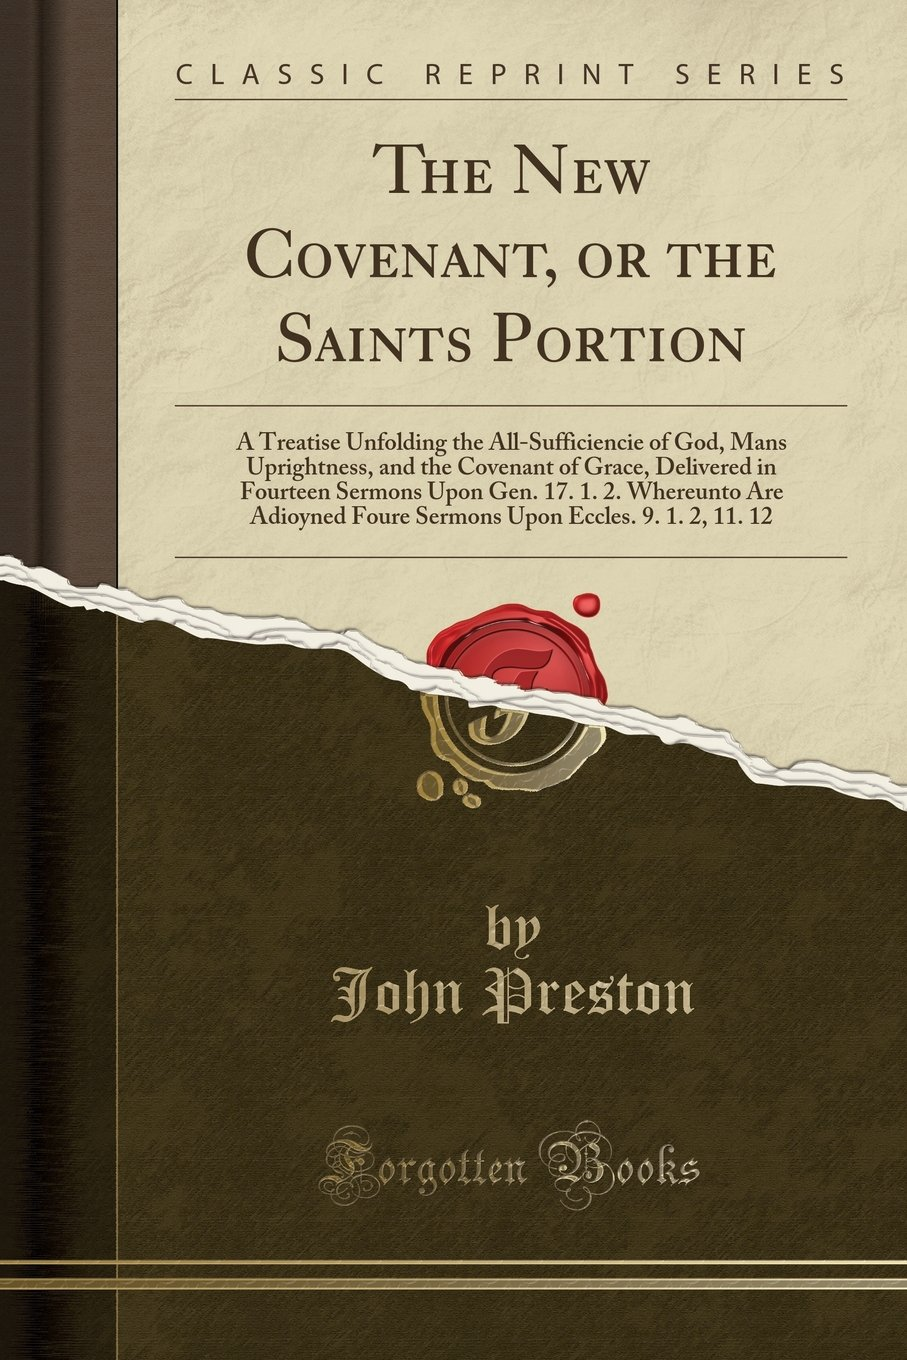 The New Covenant, or the Saints Portion: A Treatise Unfolding the All-Sufficiencie of God, Mans Uprightness, and the Covenant of Grace, Delivered in ... Foure Sermons Upon Eccles. 9. 1. 2, 11. 12 ebook